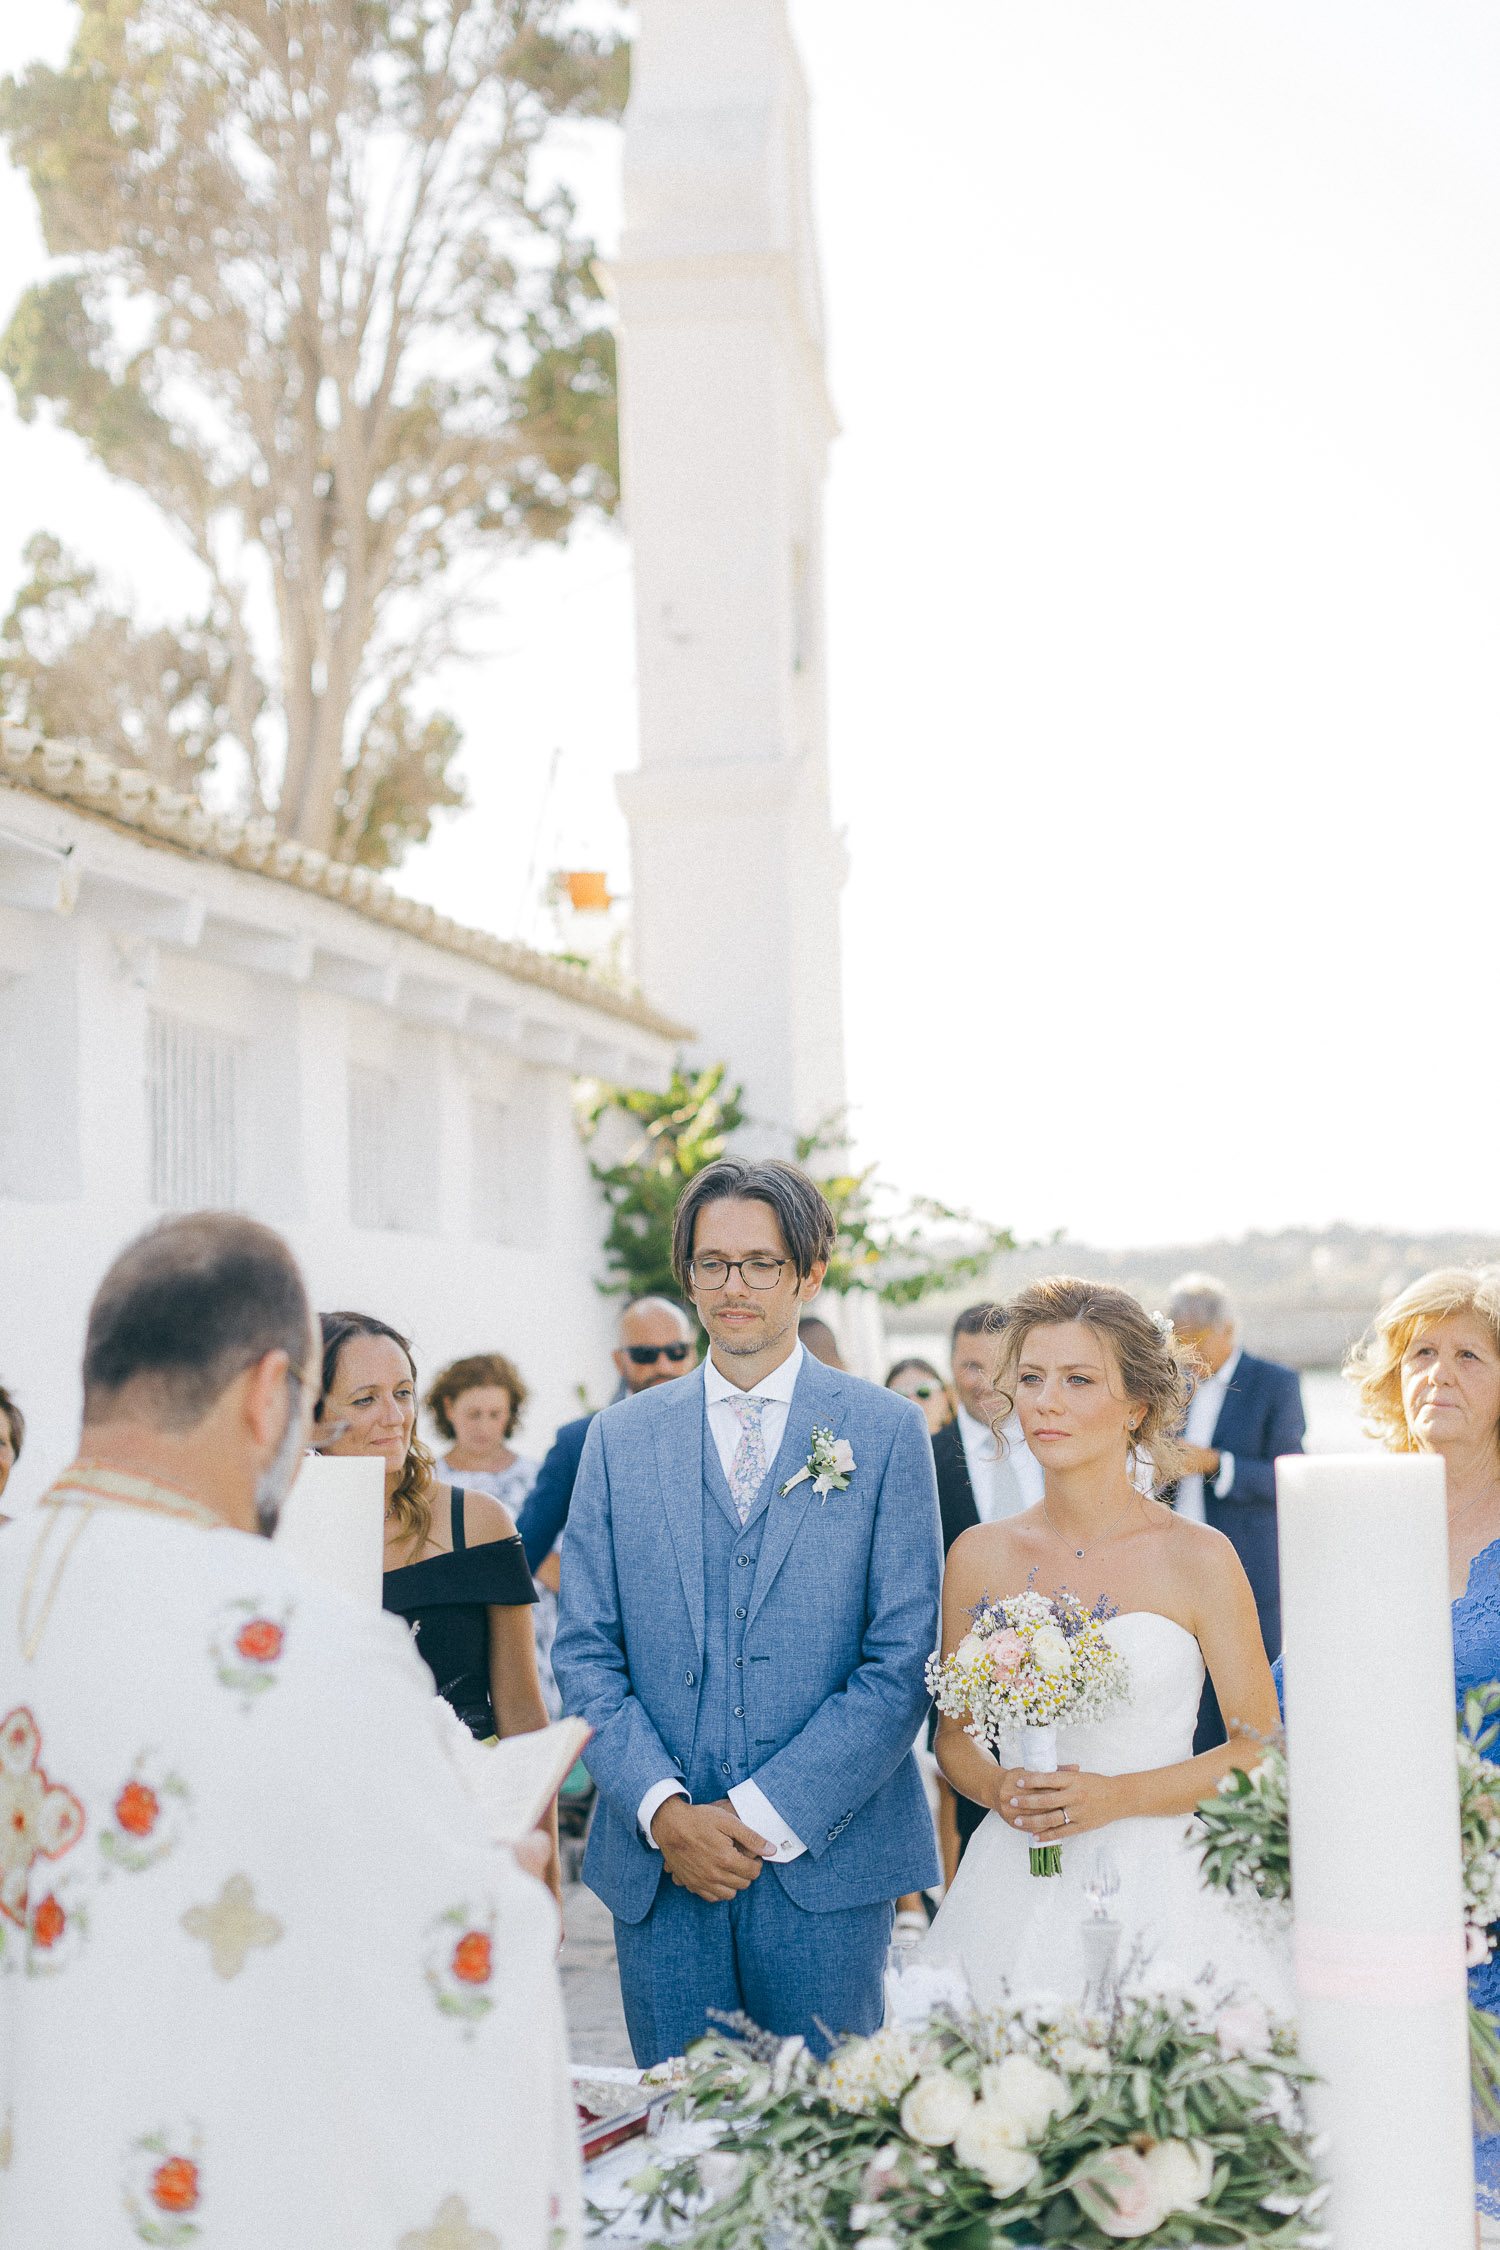 Bride and groom on the wedding ceremony while an Old World micro wedding in Corfu Island